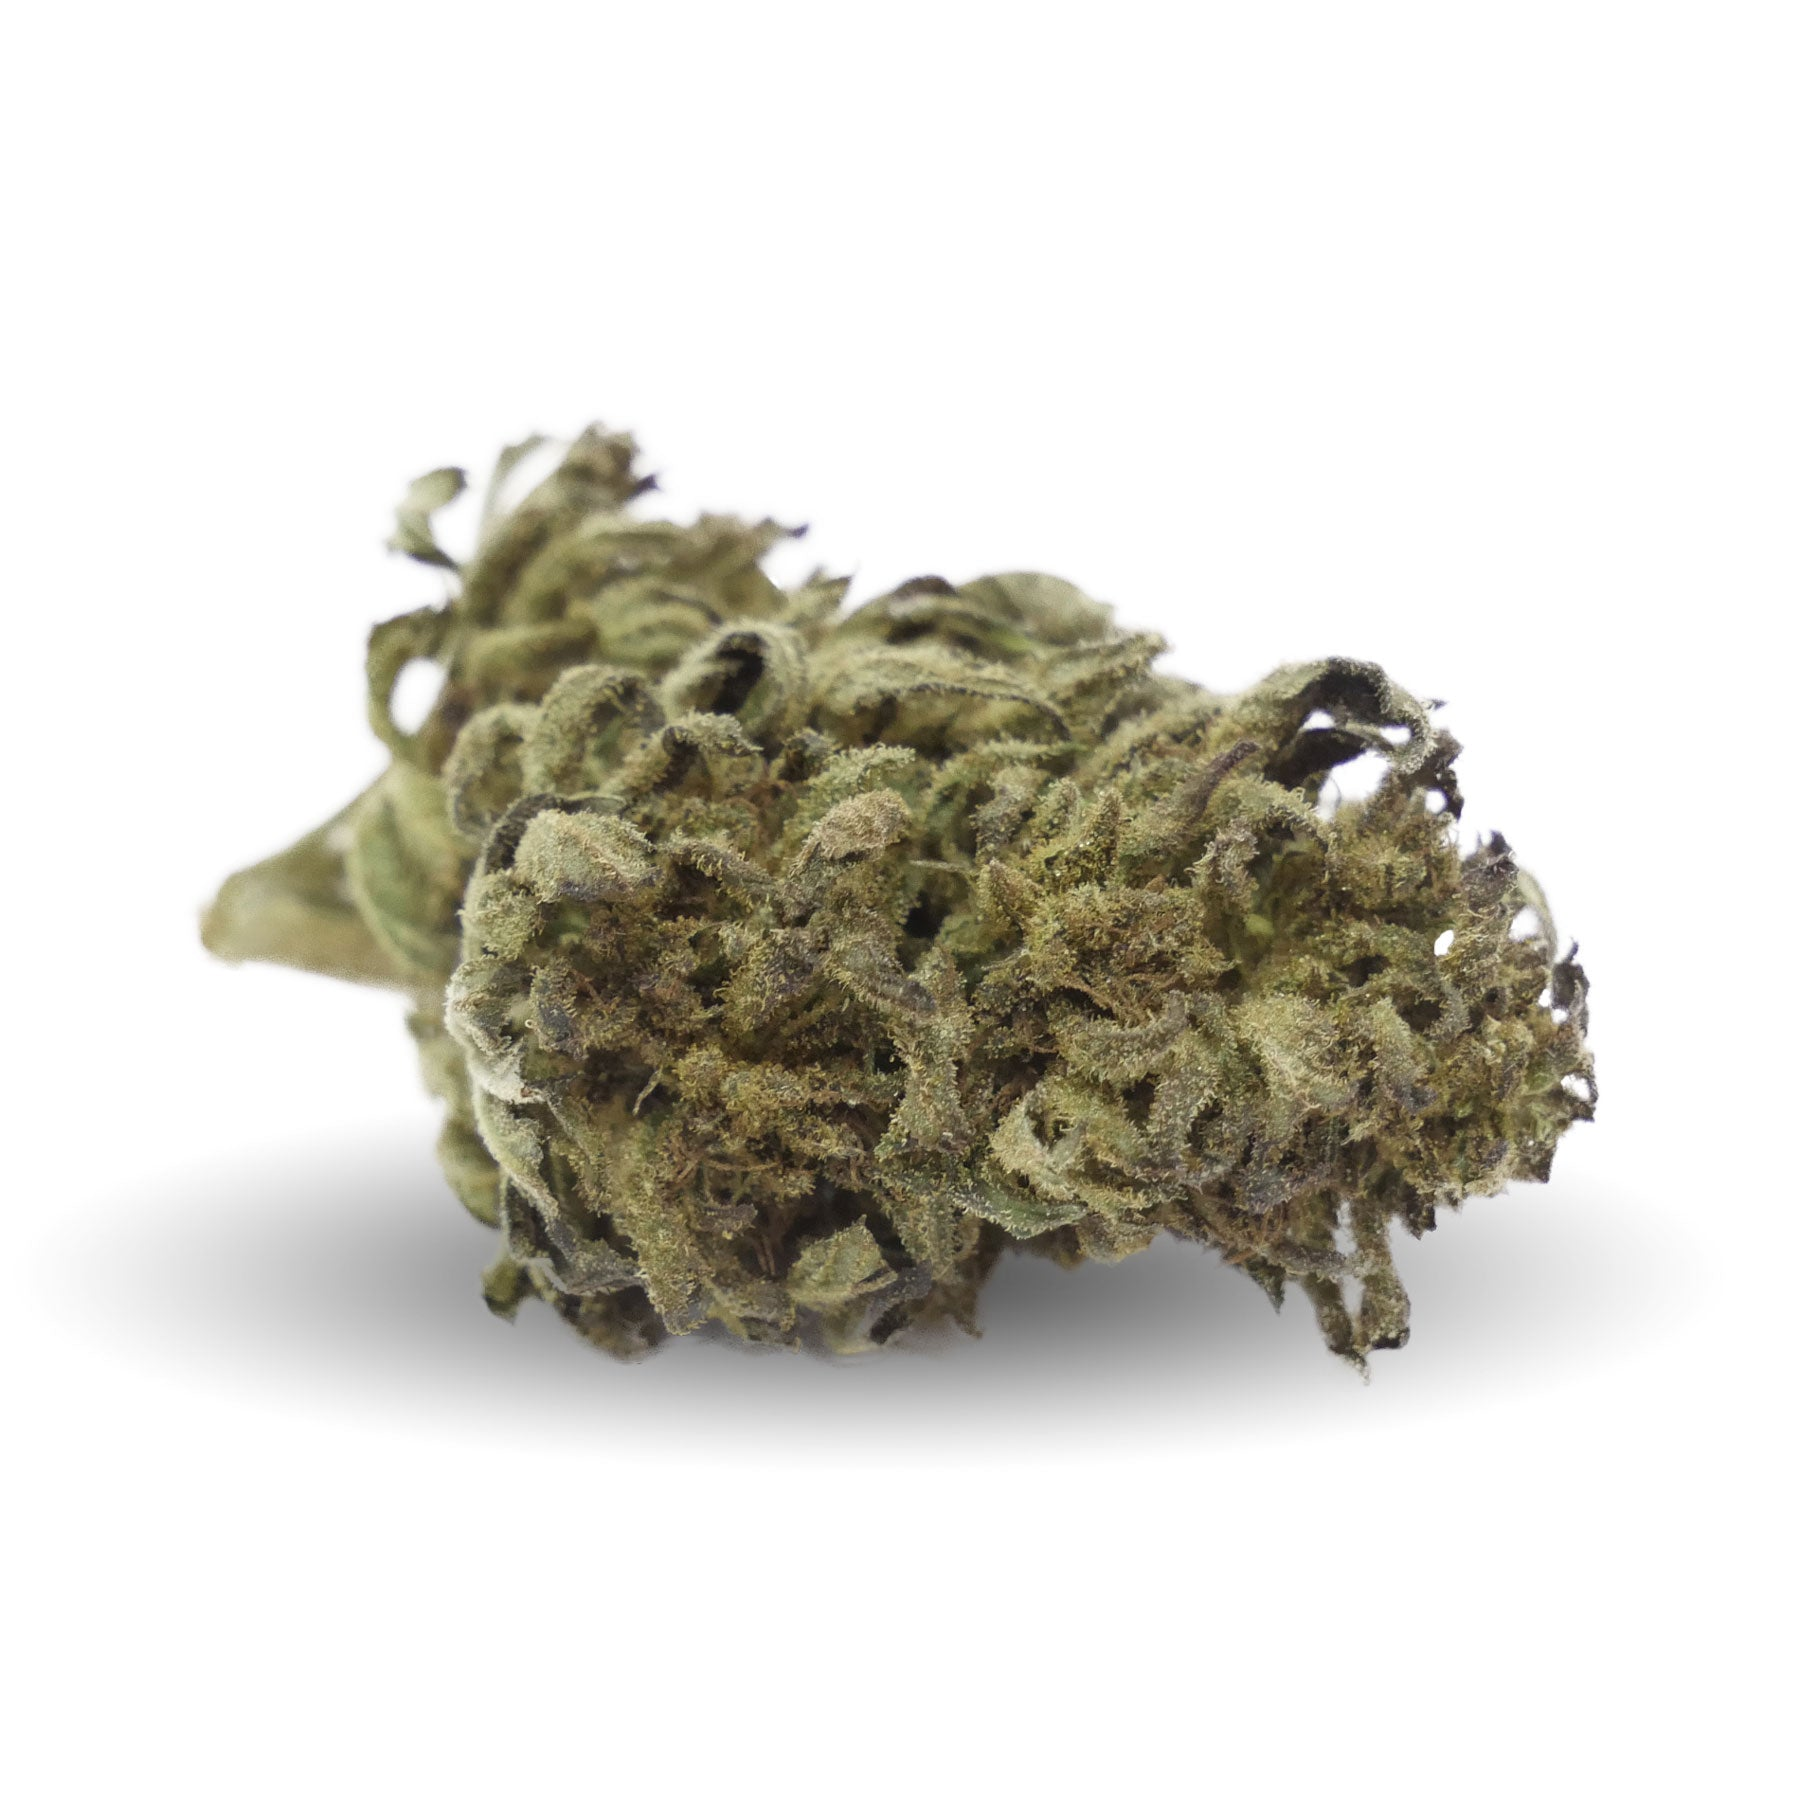 Yellow-CBD Cannabis-EasyWeed-Swiss CBD Shop-uWeed